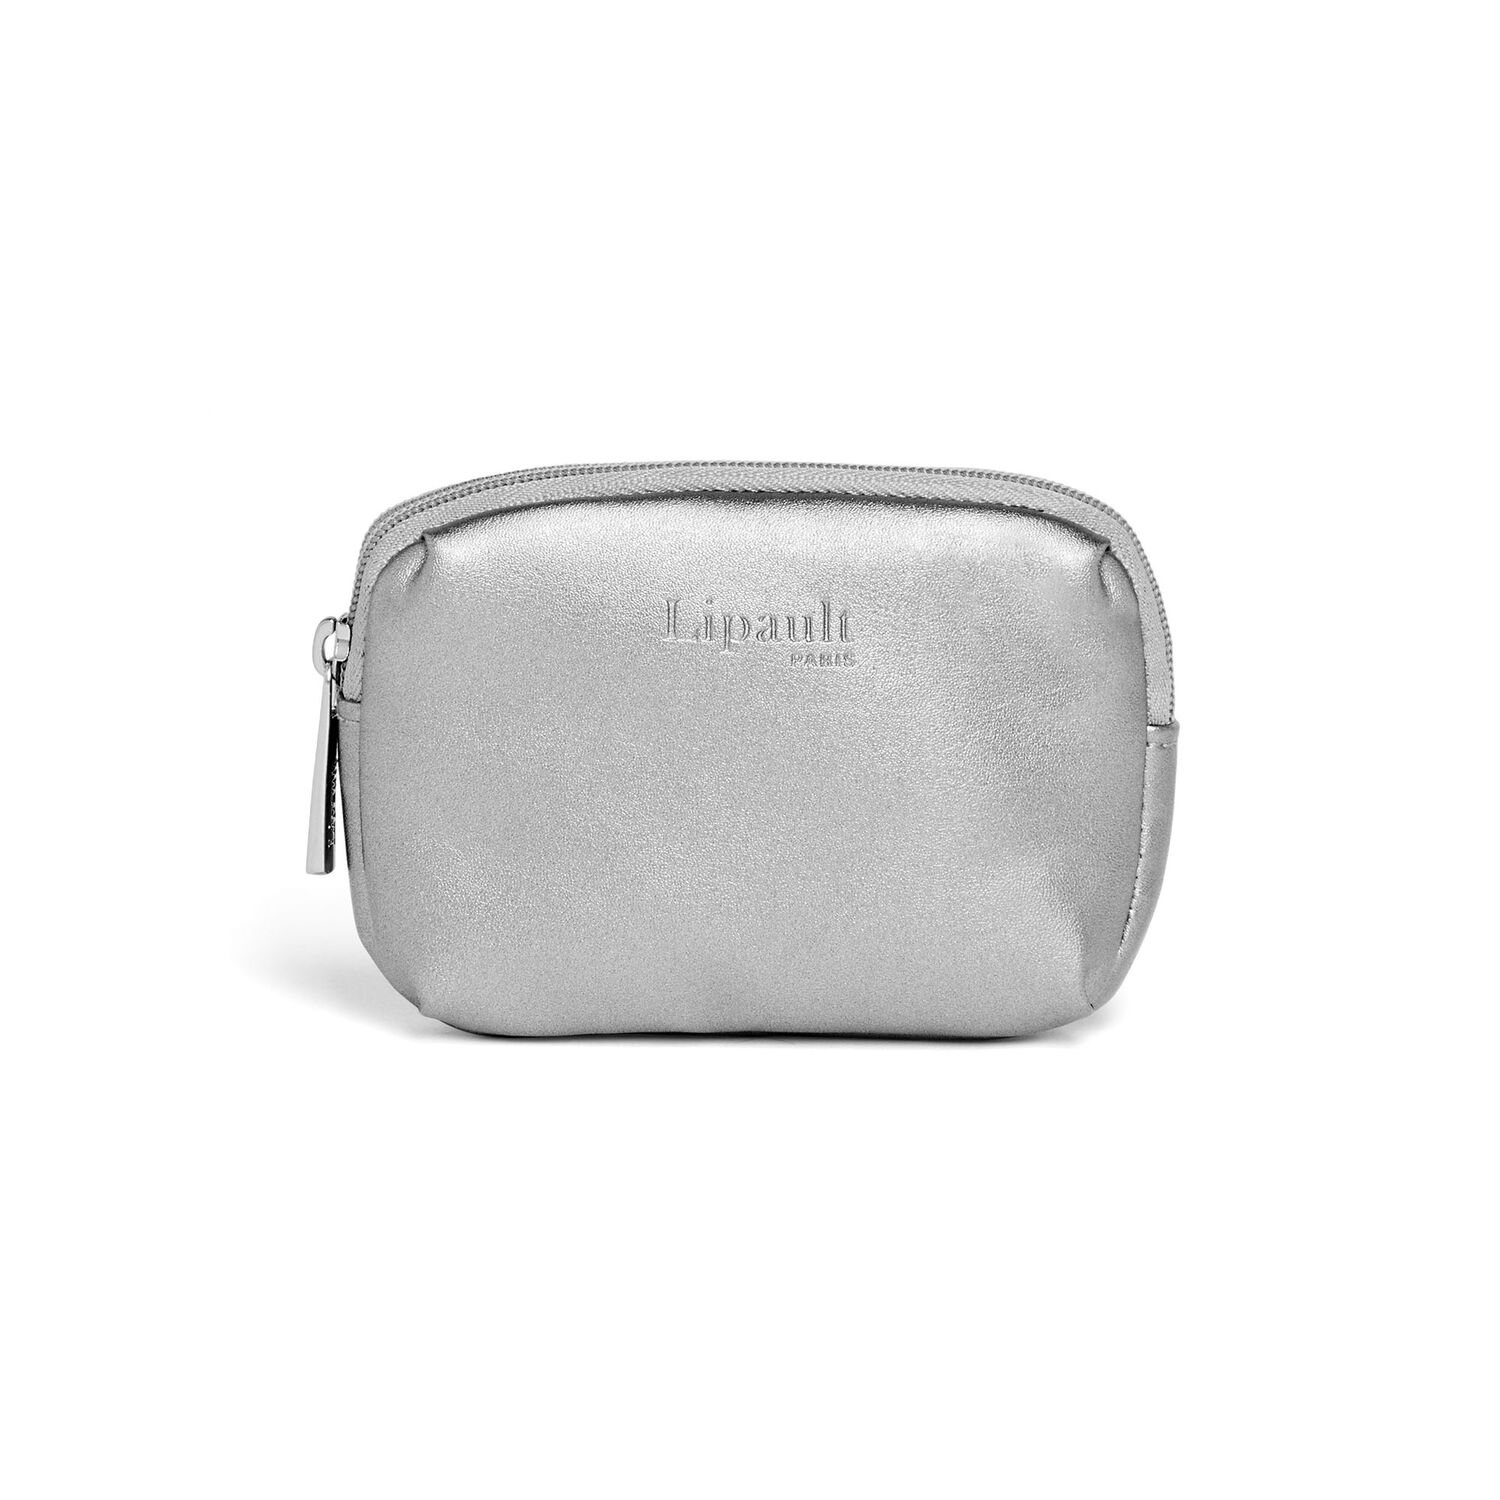 Lipault Miss Plume Coin Purse in the color Titanium.